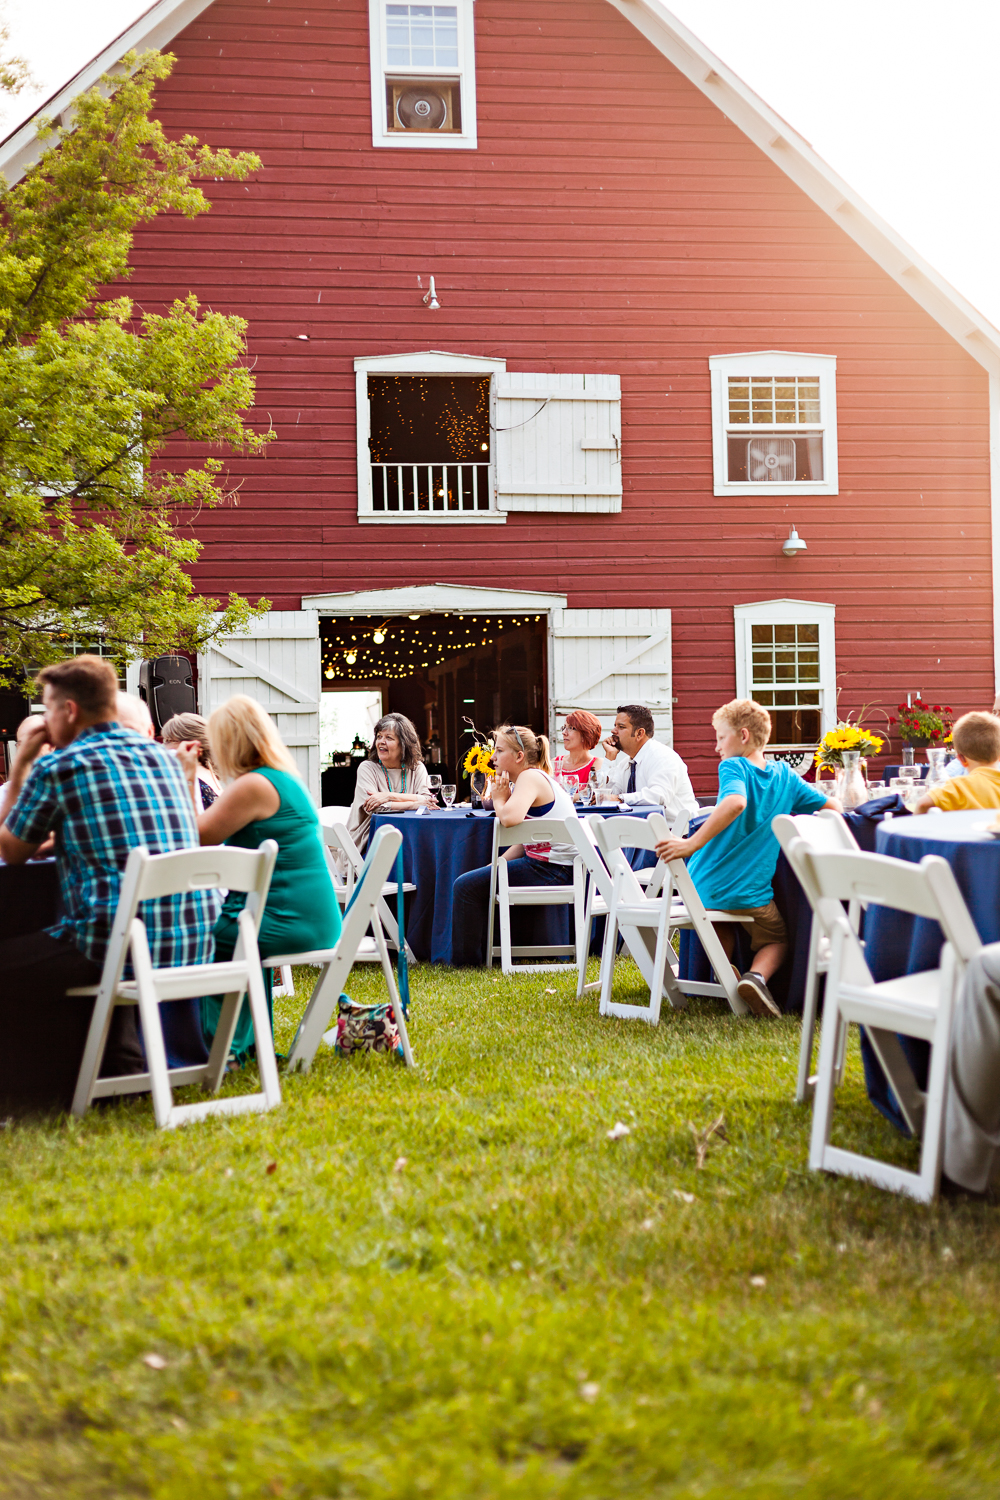 bozeman-montana-wedding-roys-barn-reception-outside-barn.jpg